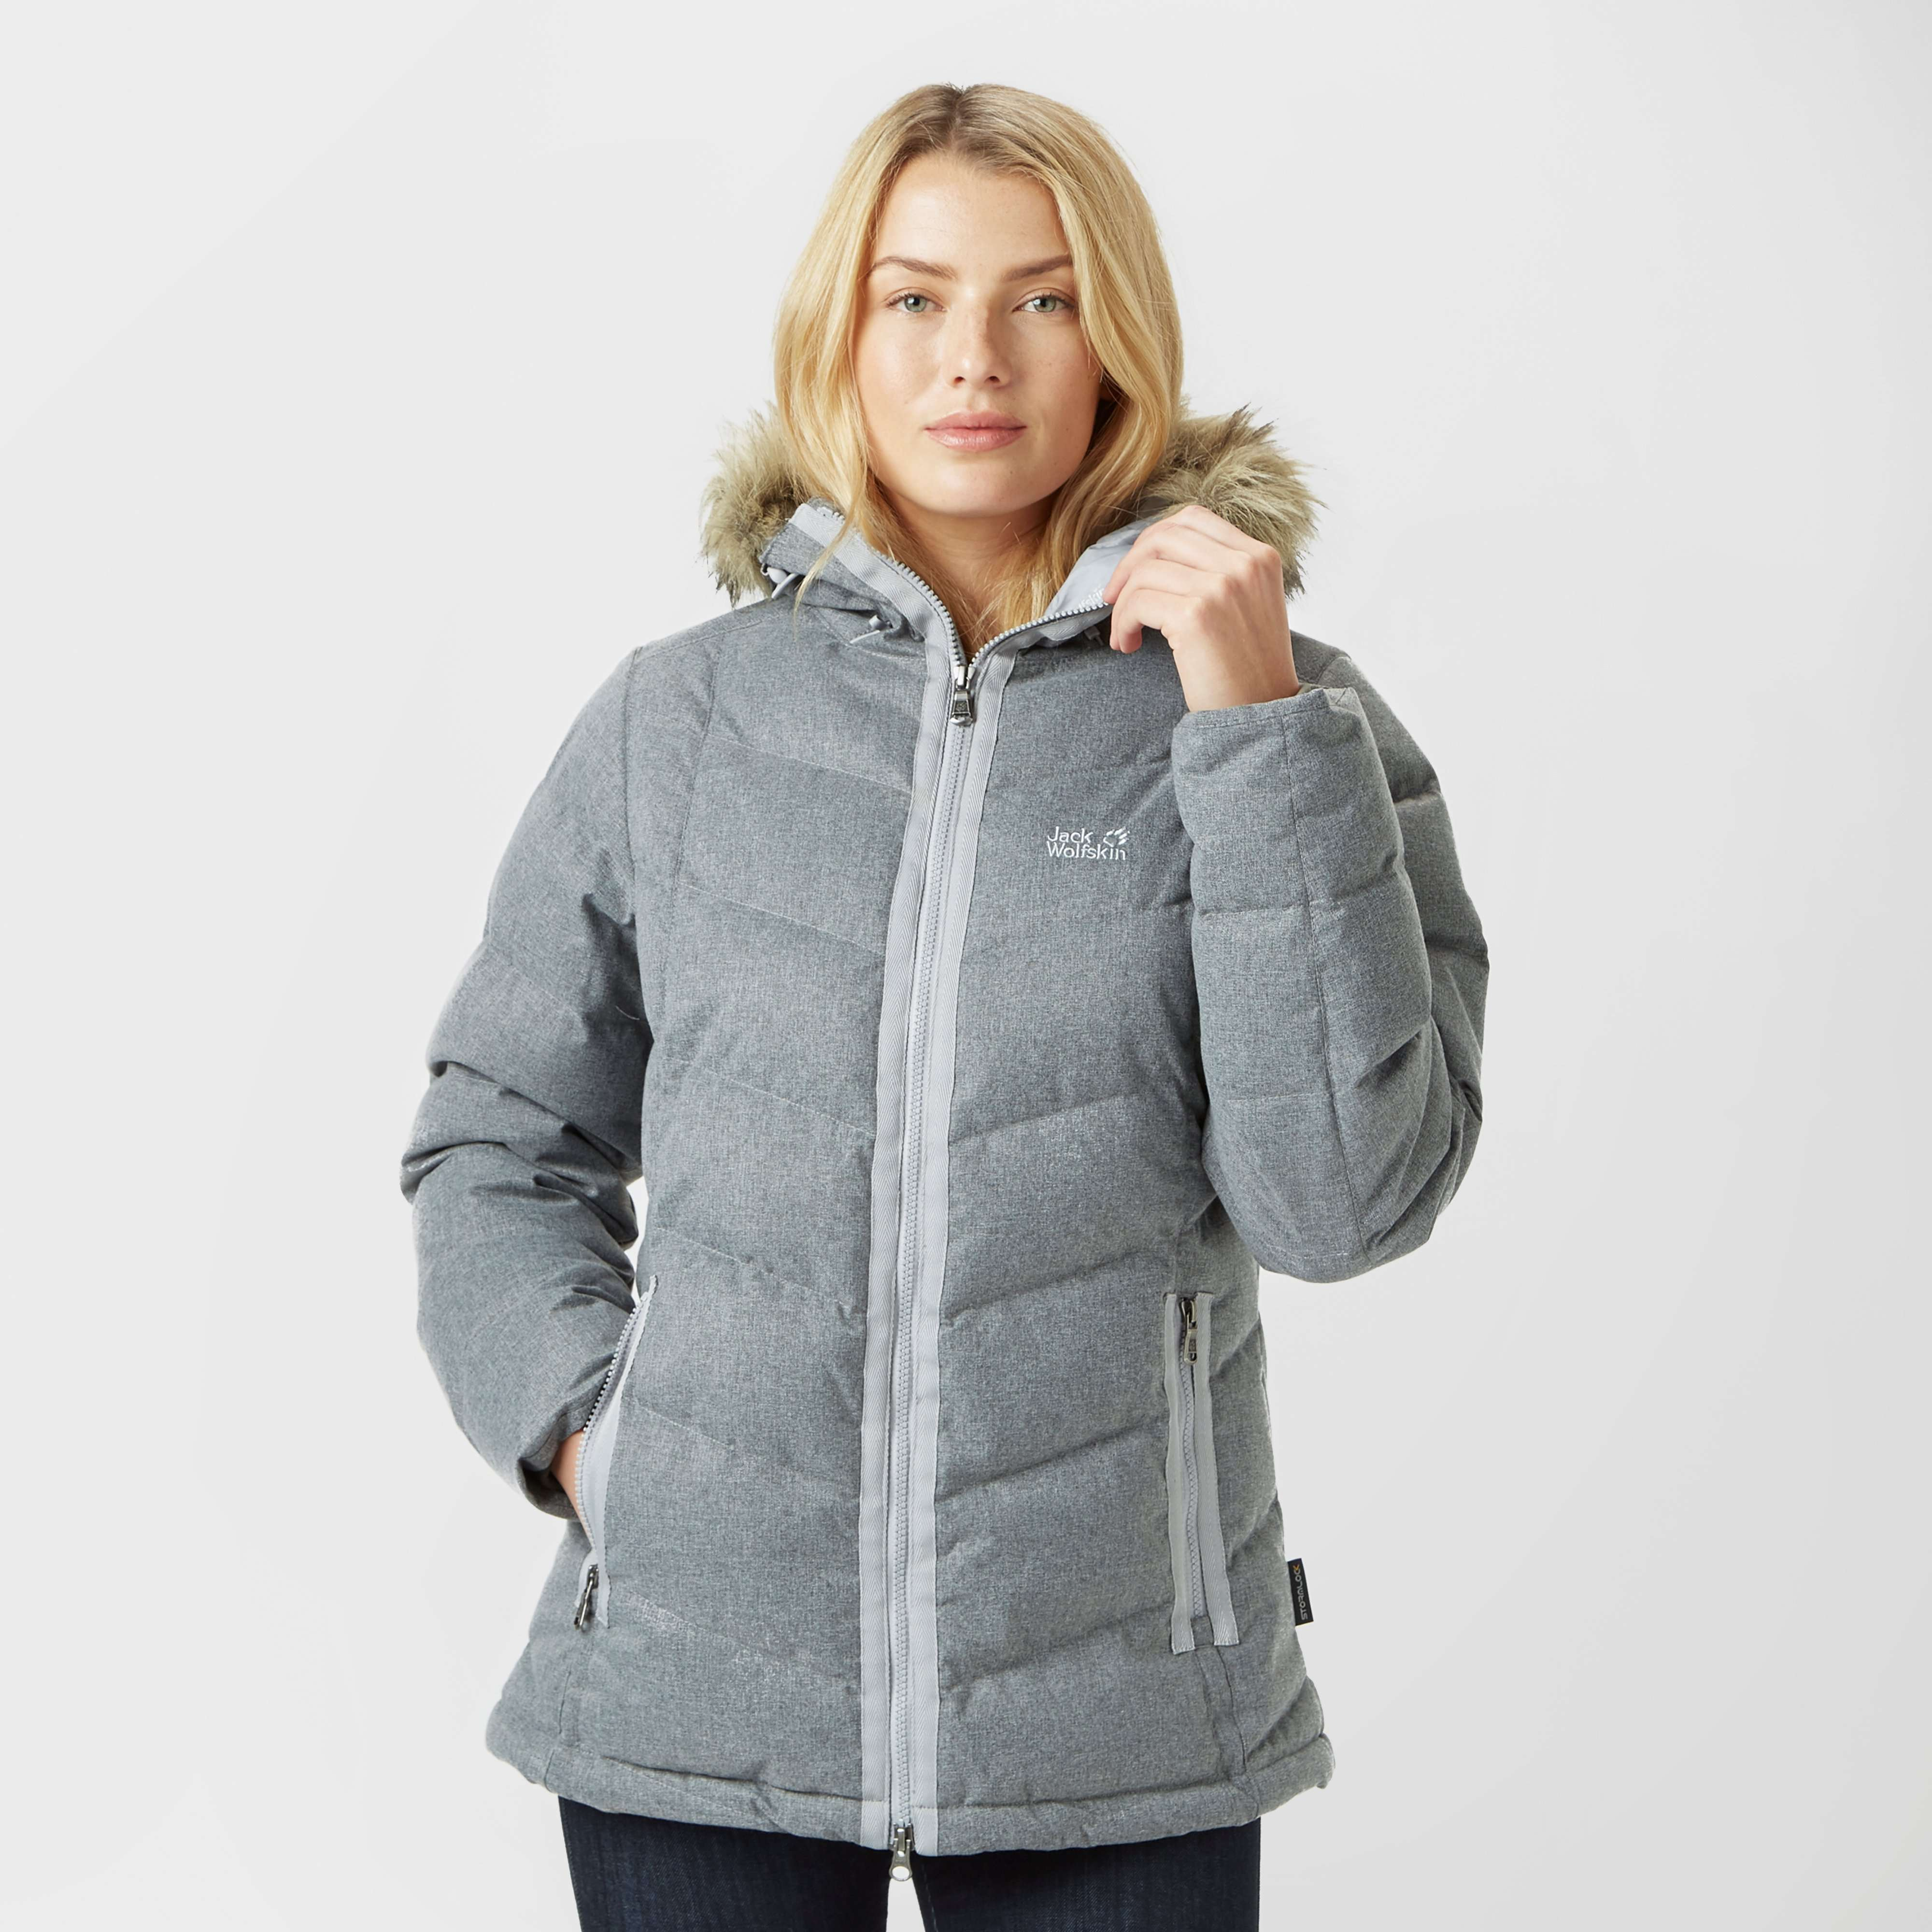 JACK WOLFSKIN Women's Baffin Bay Jacket